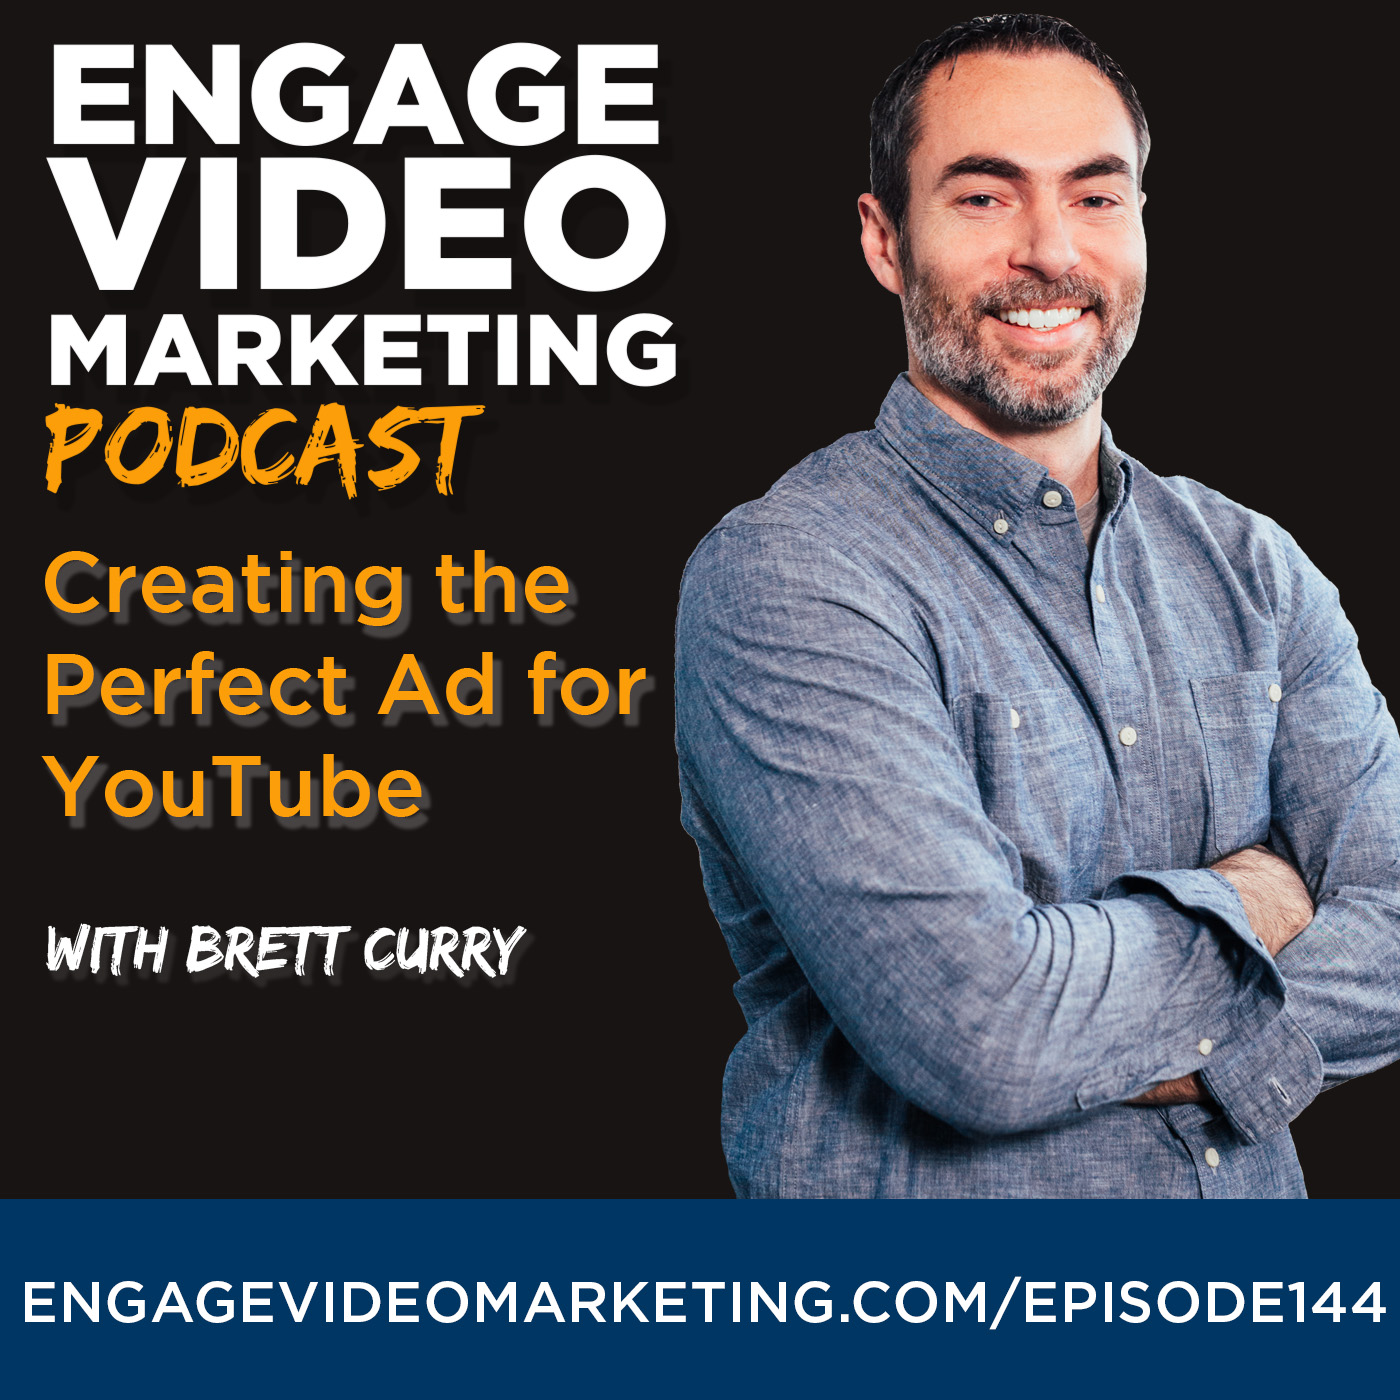 Creating the Perfect Ad for YouTube with Brett Curry